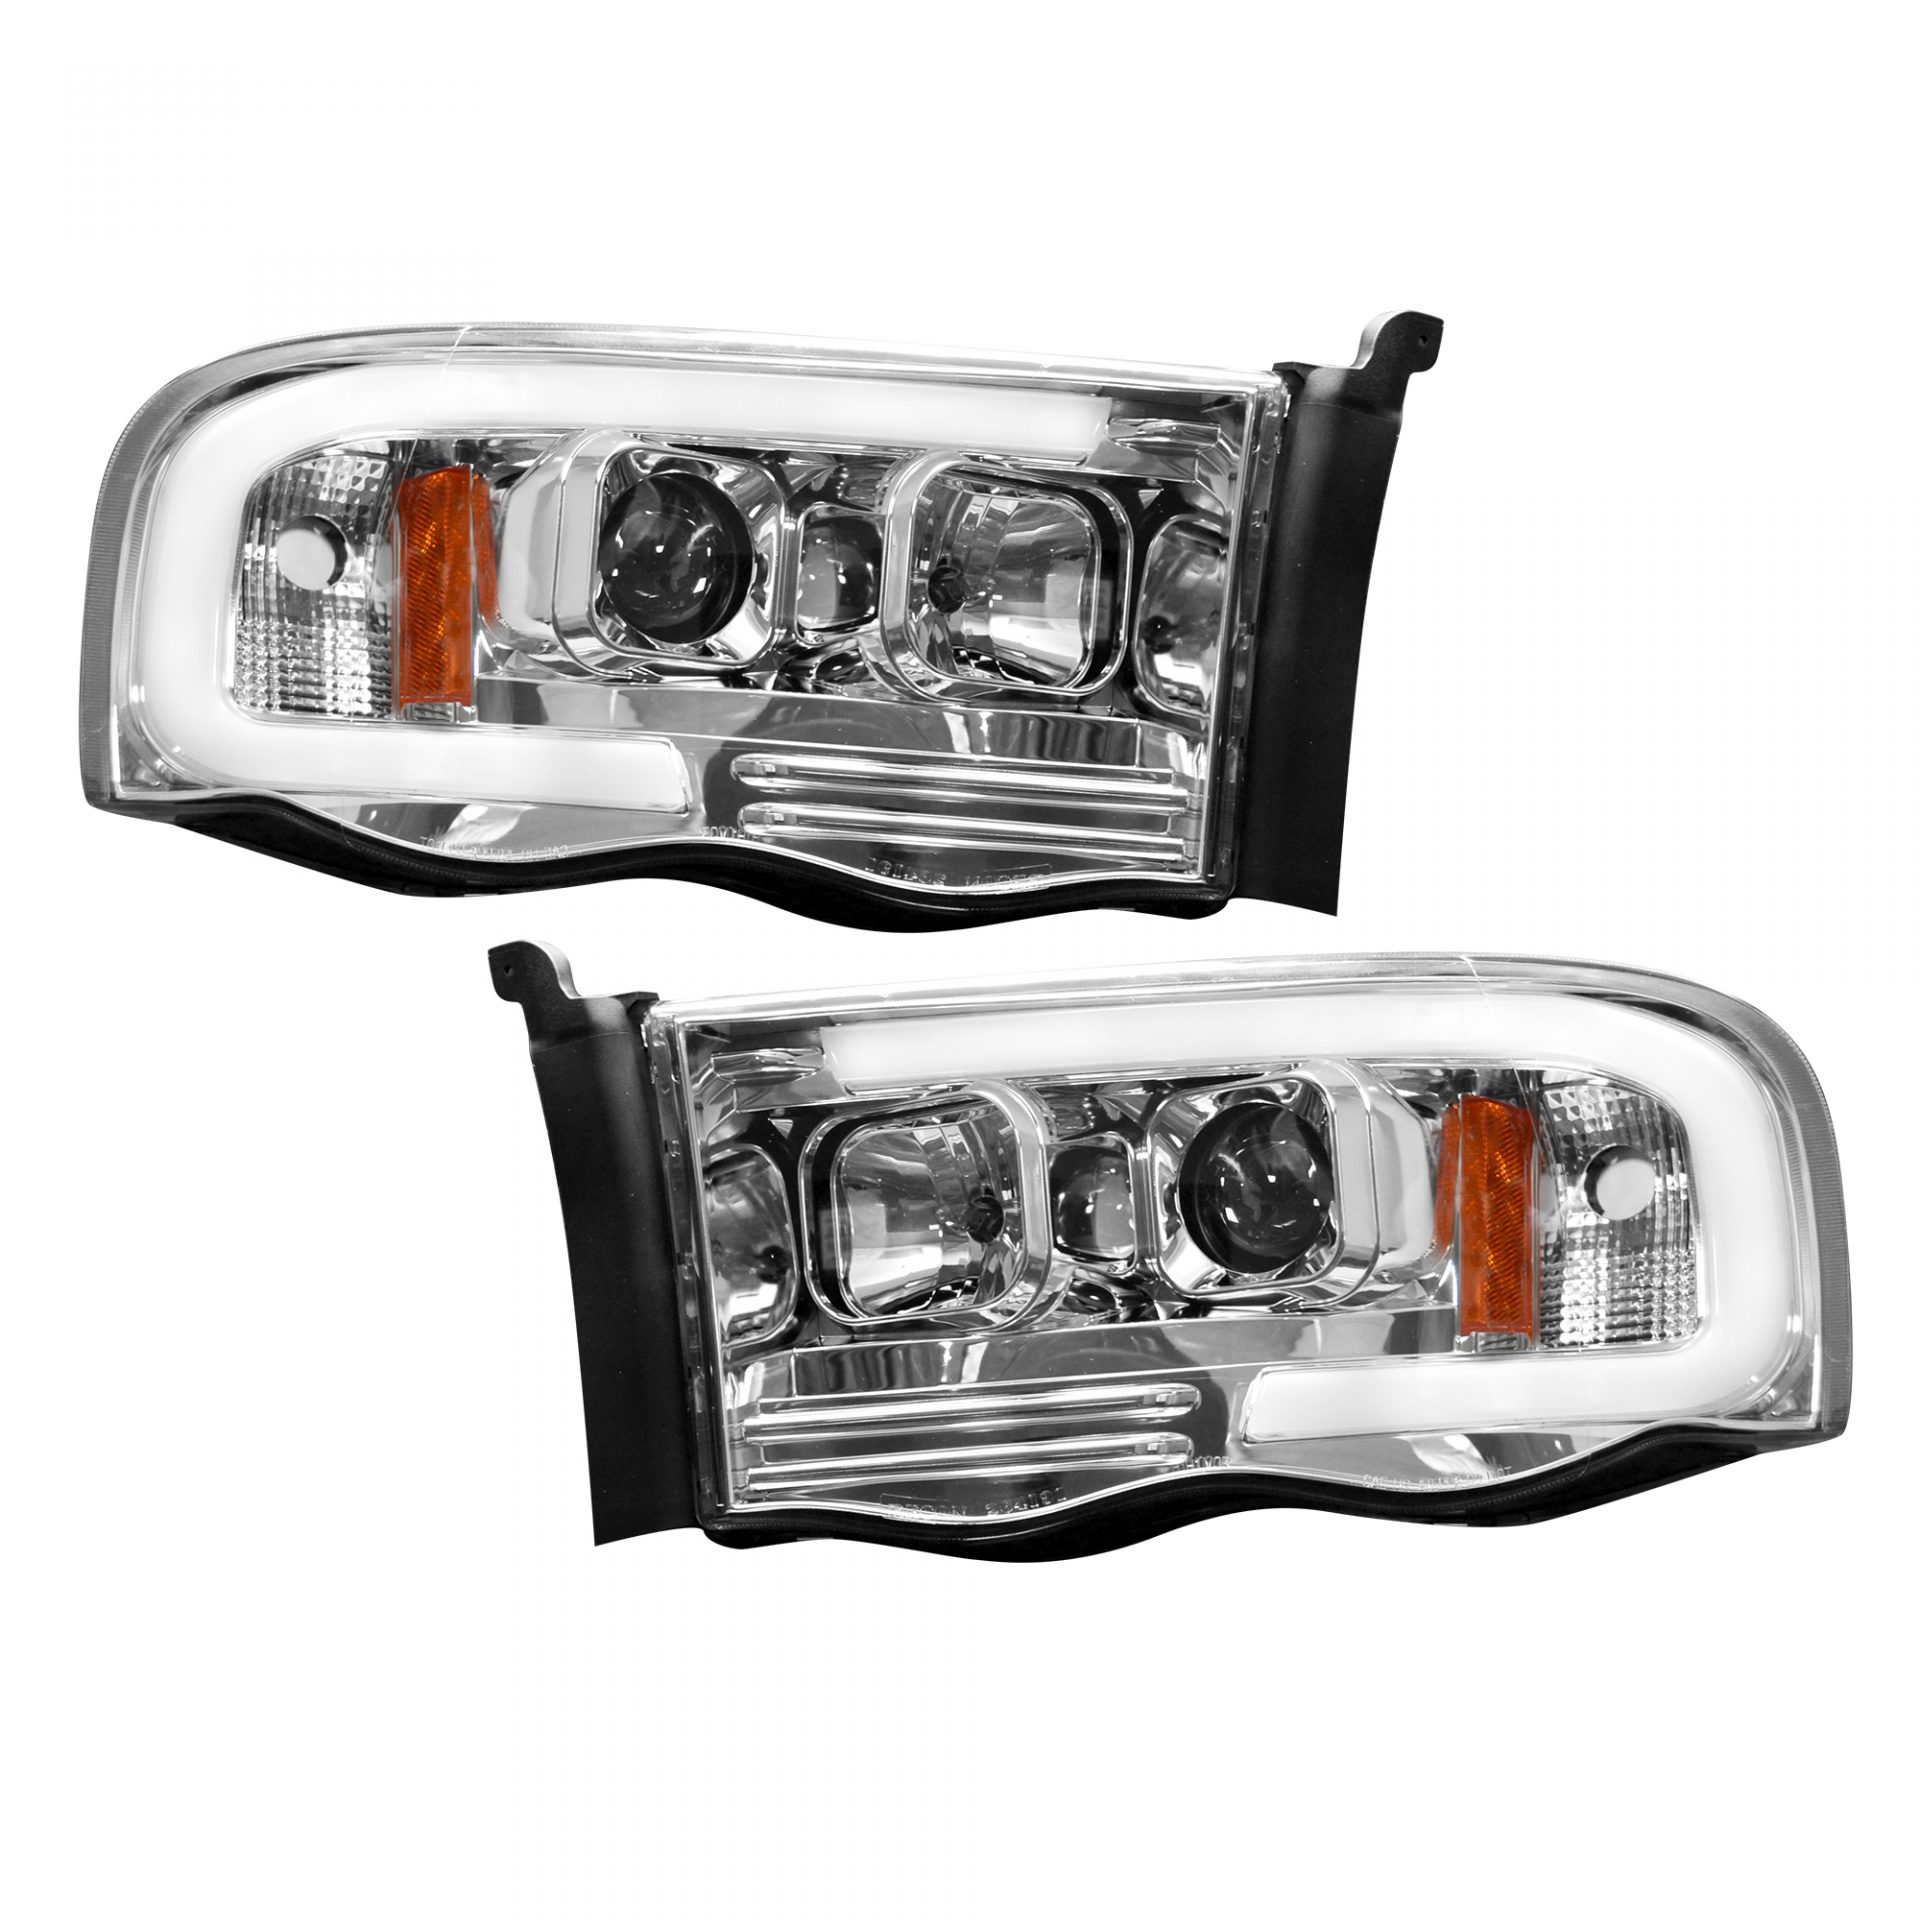 Recon 264191clc Dodge Ram 02 05 1500 2500 3500 Projector Headlights W Ultra High Smooth Oled Halos Drl Clear Chrome